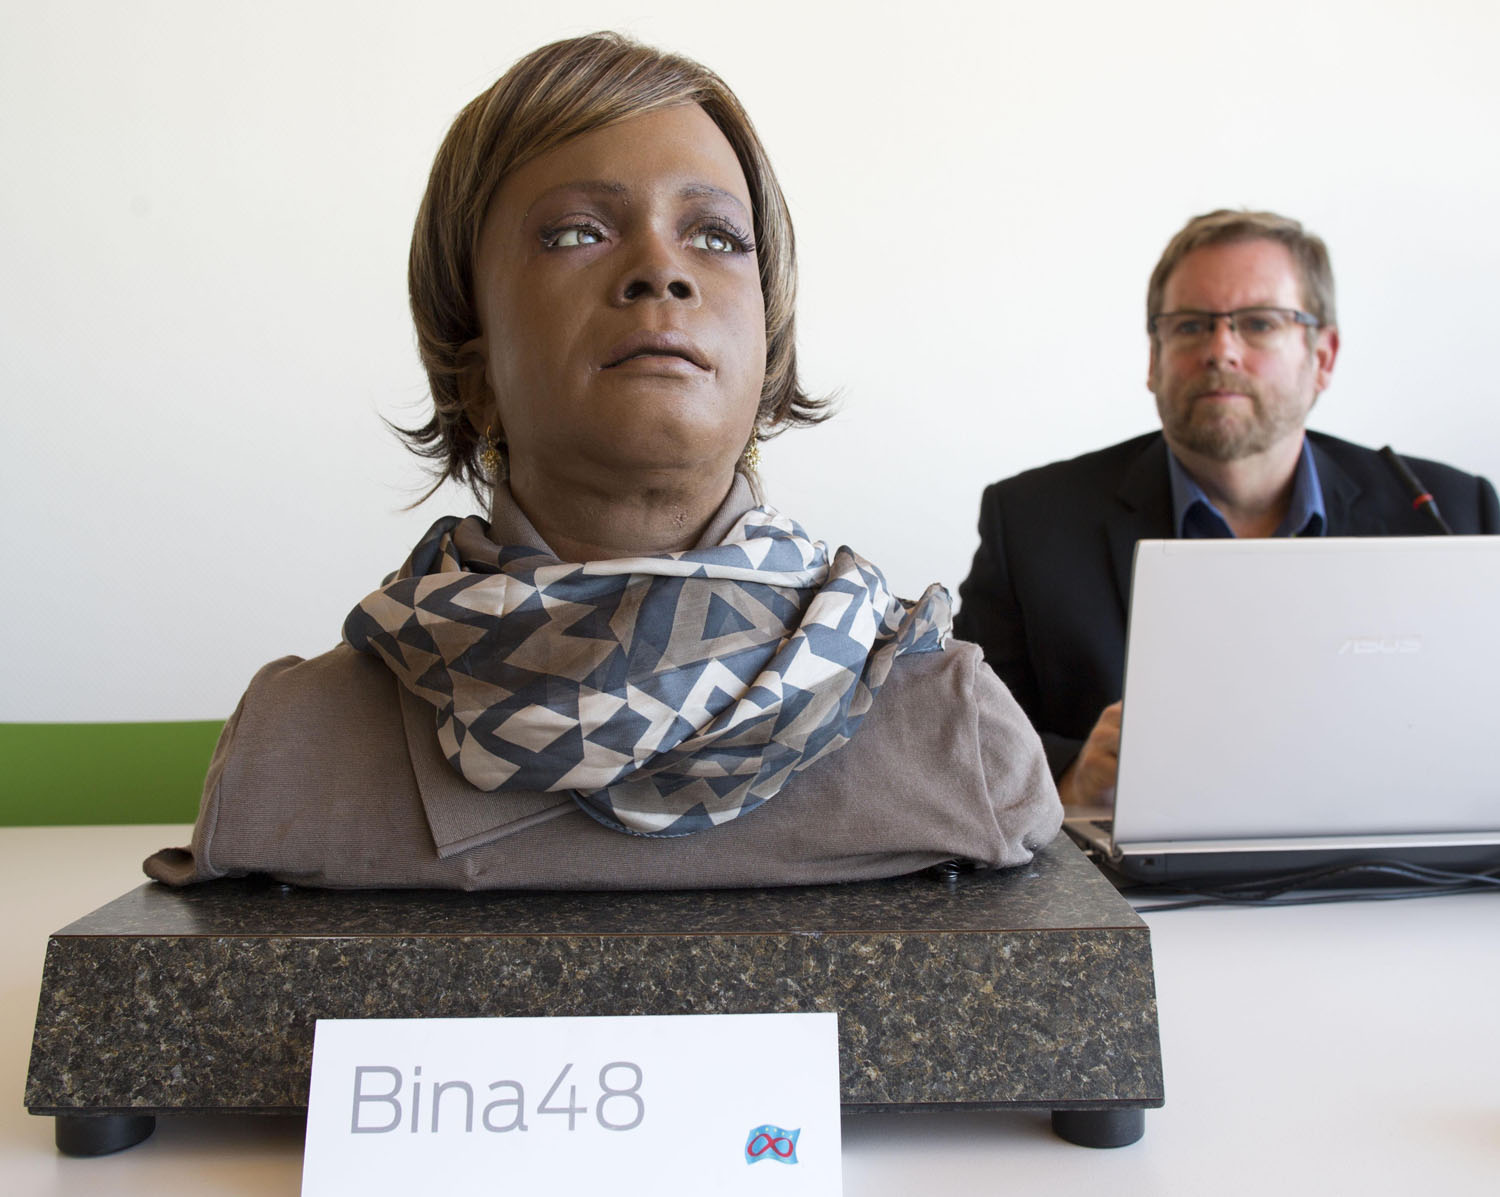 Bina48 talks to her designing engineer Bruce Duncan at a press date in Wetzlar, Germany, March 15, 2013.